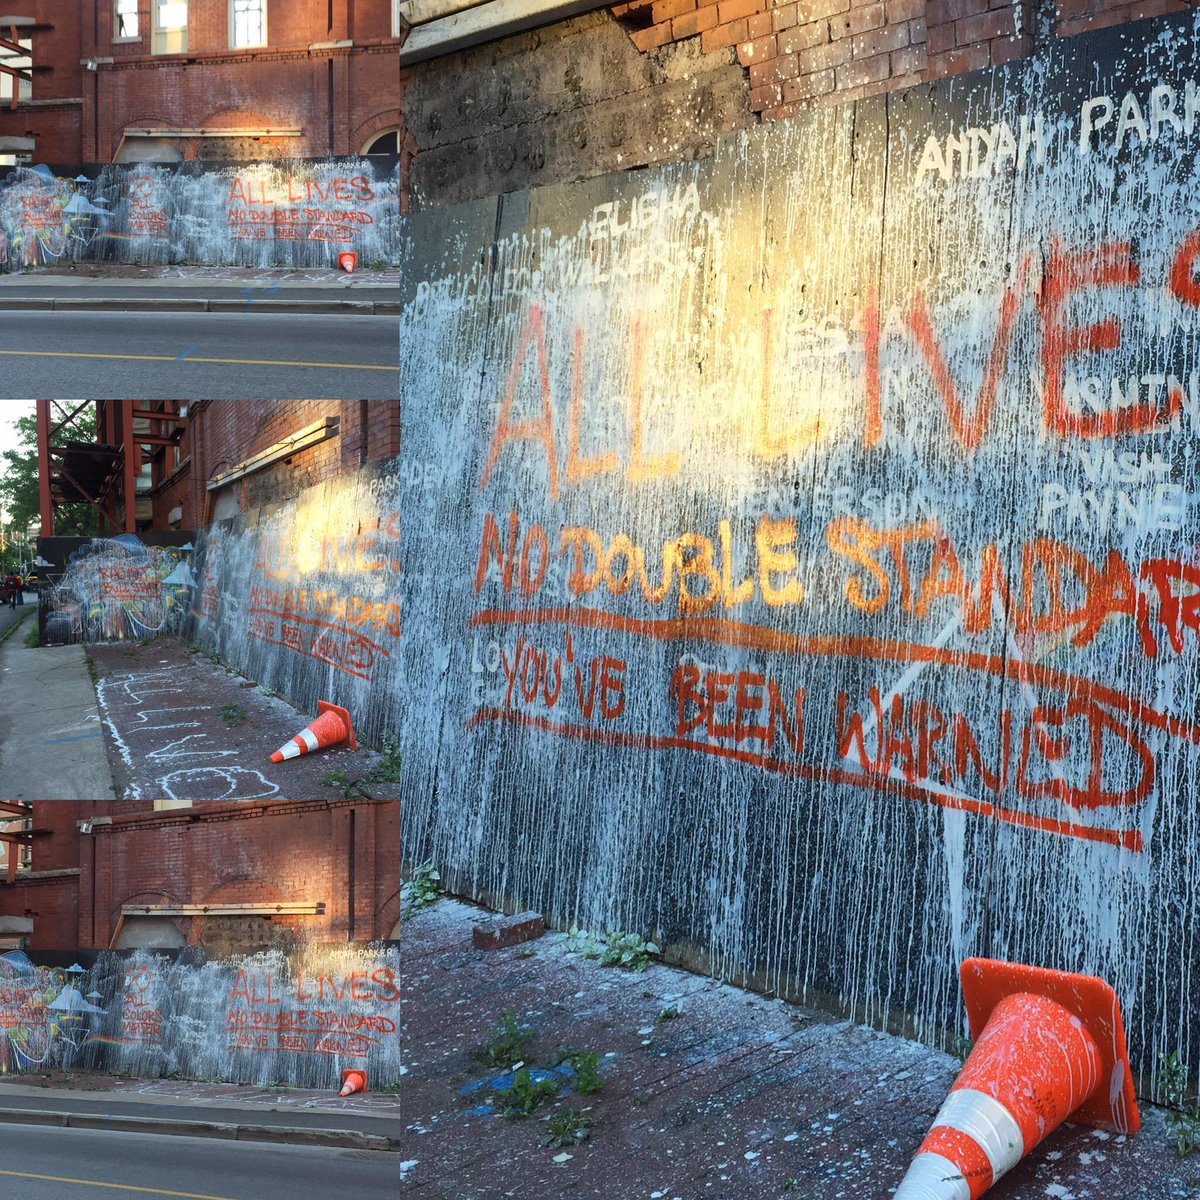 "Celebrated Black Trans Lives Matter mural on Bank St destroyed. ""You've been warned"" scrawled violently. #notmyottawa http://t.co/p83XaeuHlW"